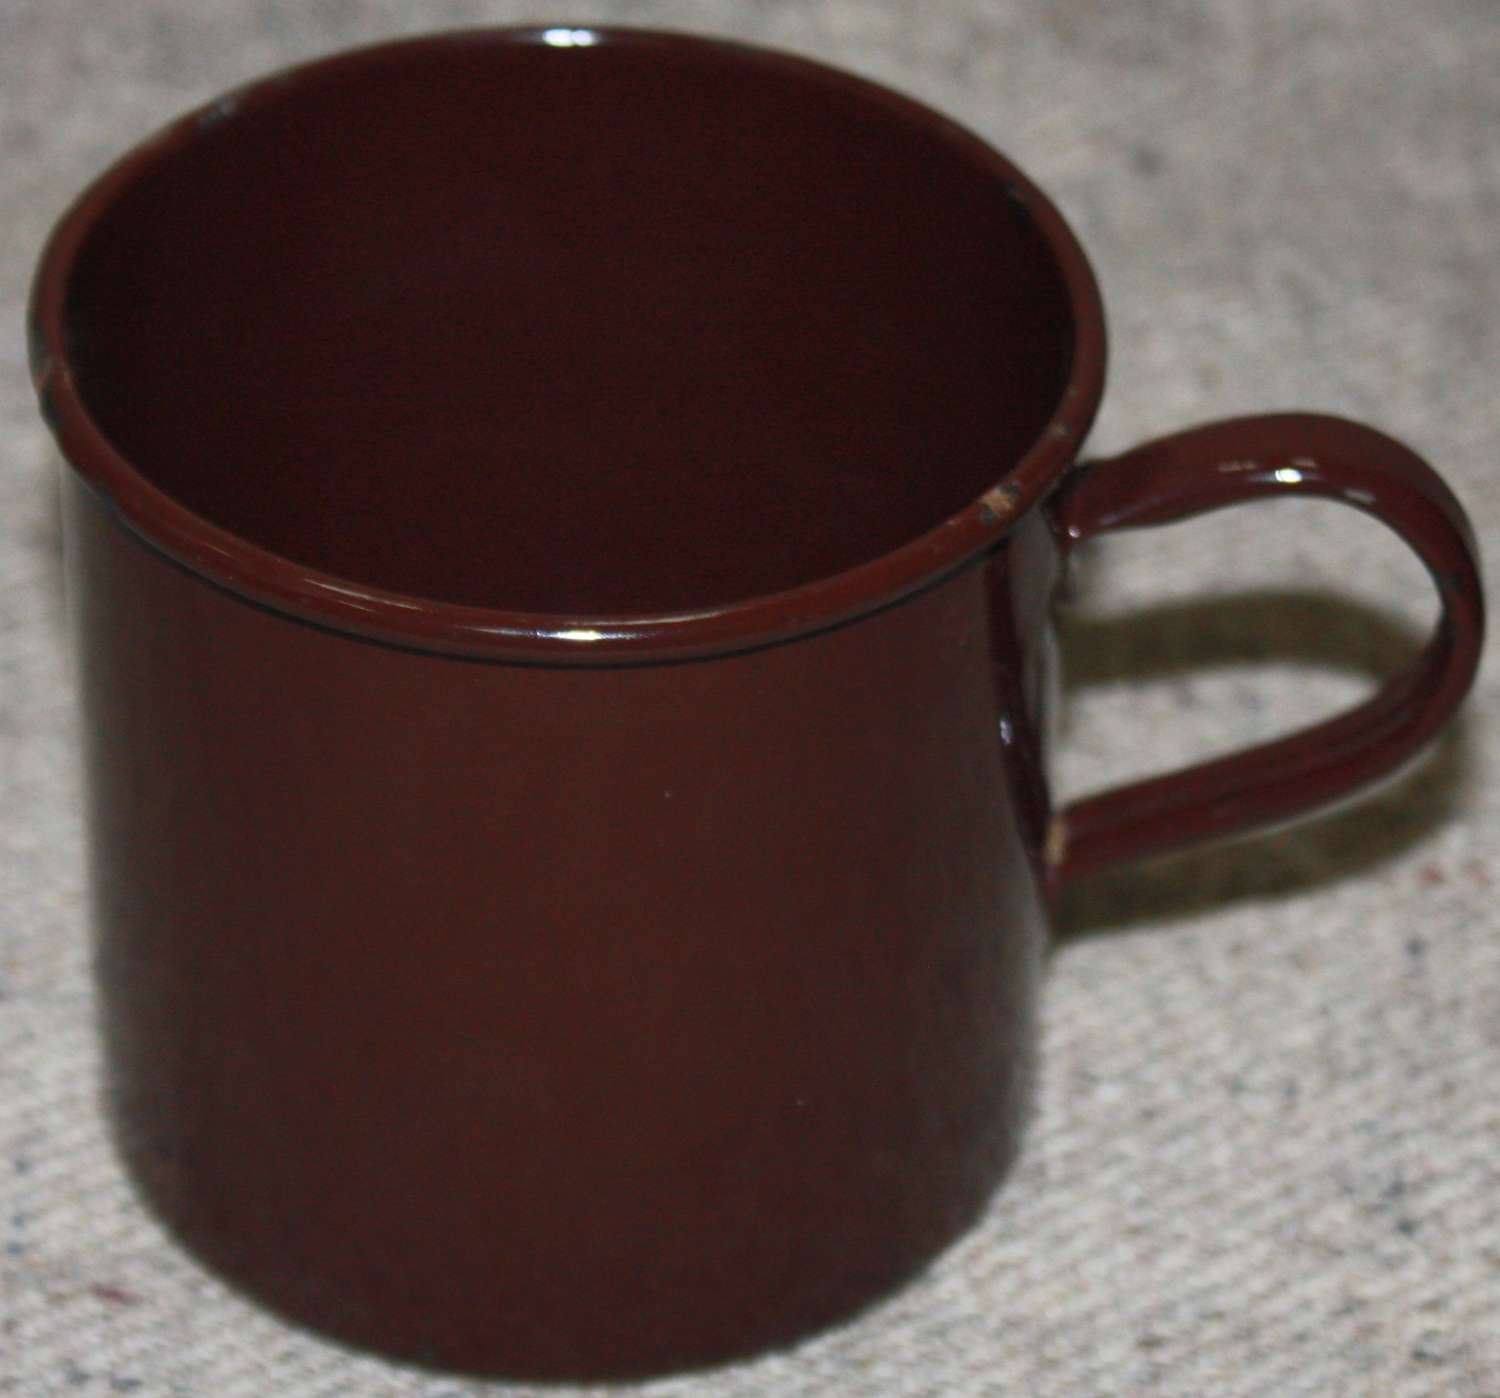 A GOOD WWII PERIOD BRITISH ISSUE ENAMEL MUG